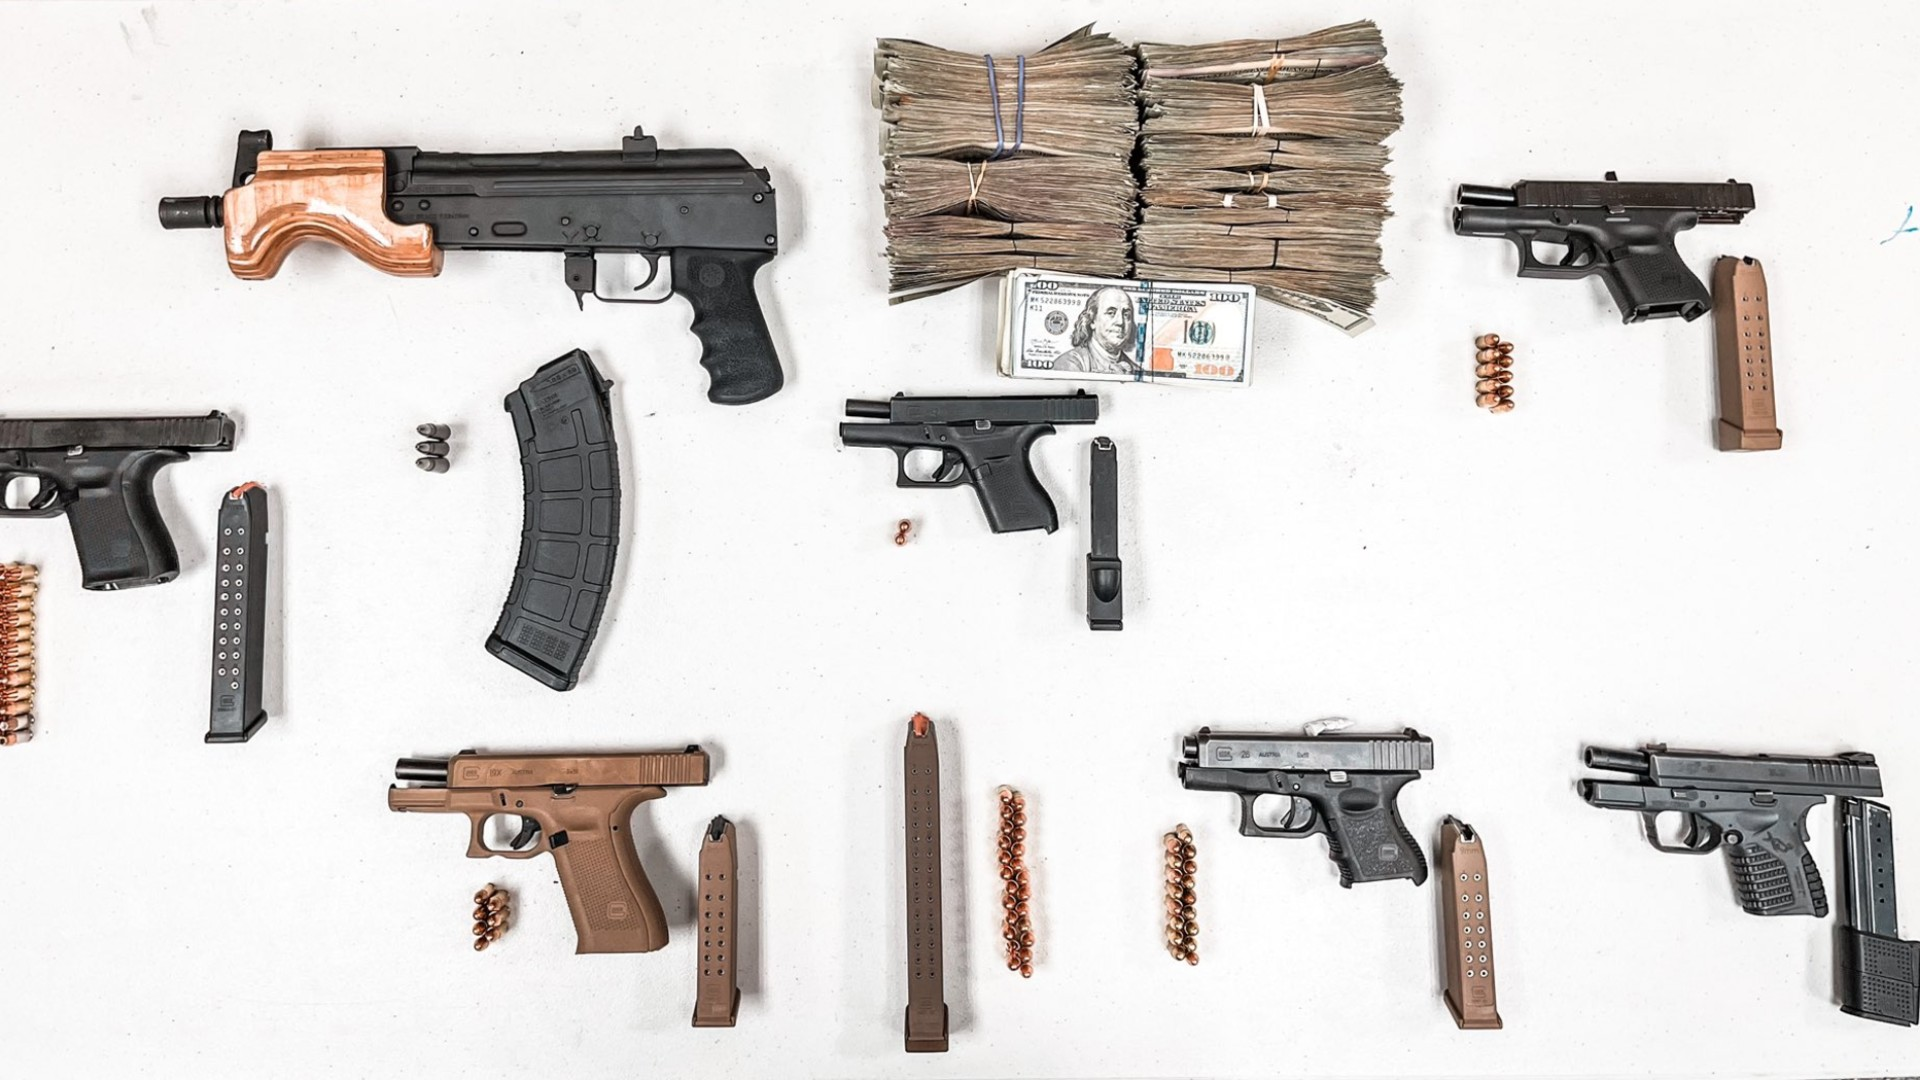 LAPD tweeted photos of stolen weapons recovered during a traffic stop in Hollywood on March 4, 2021.